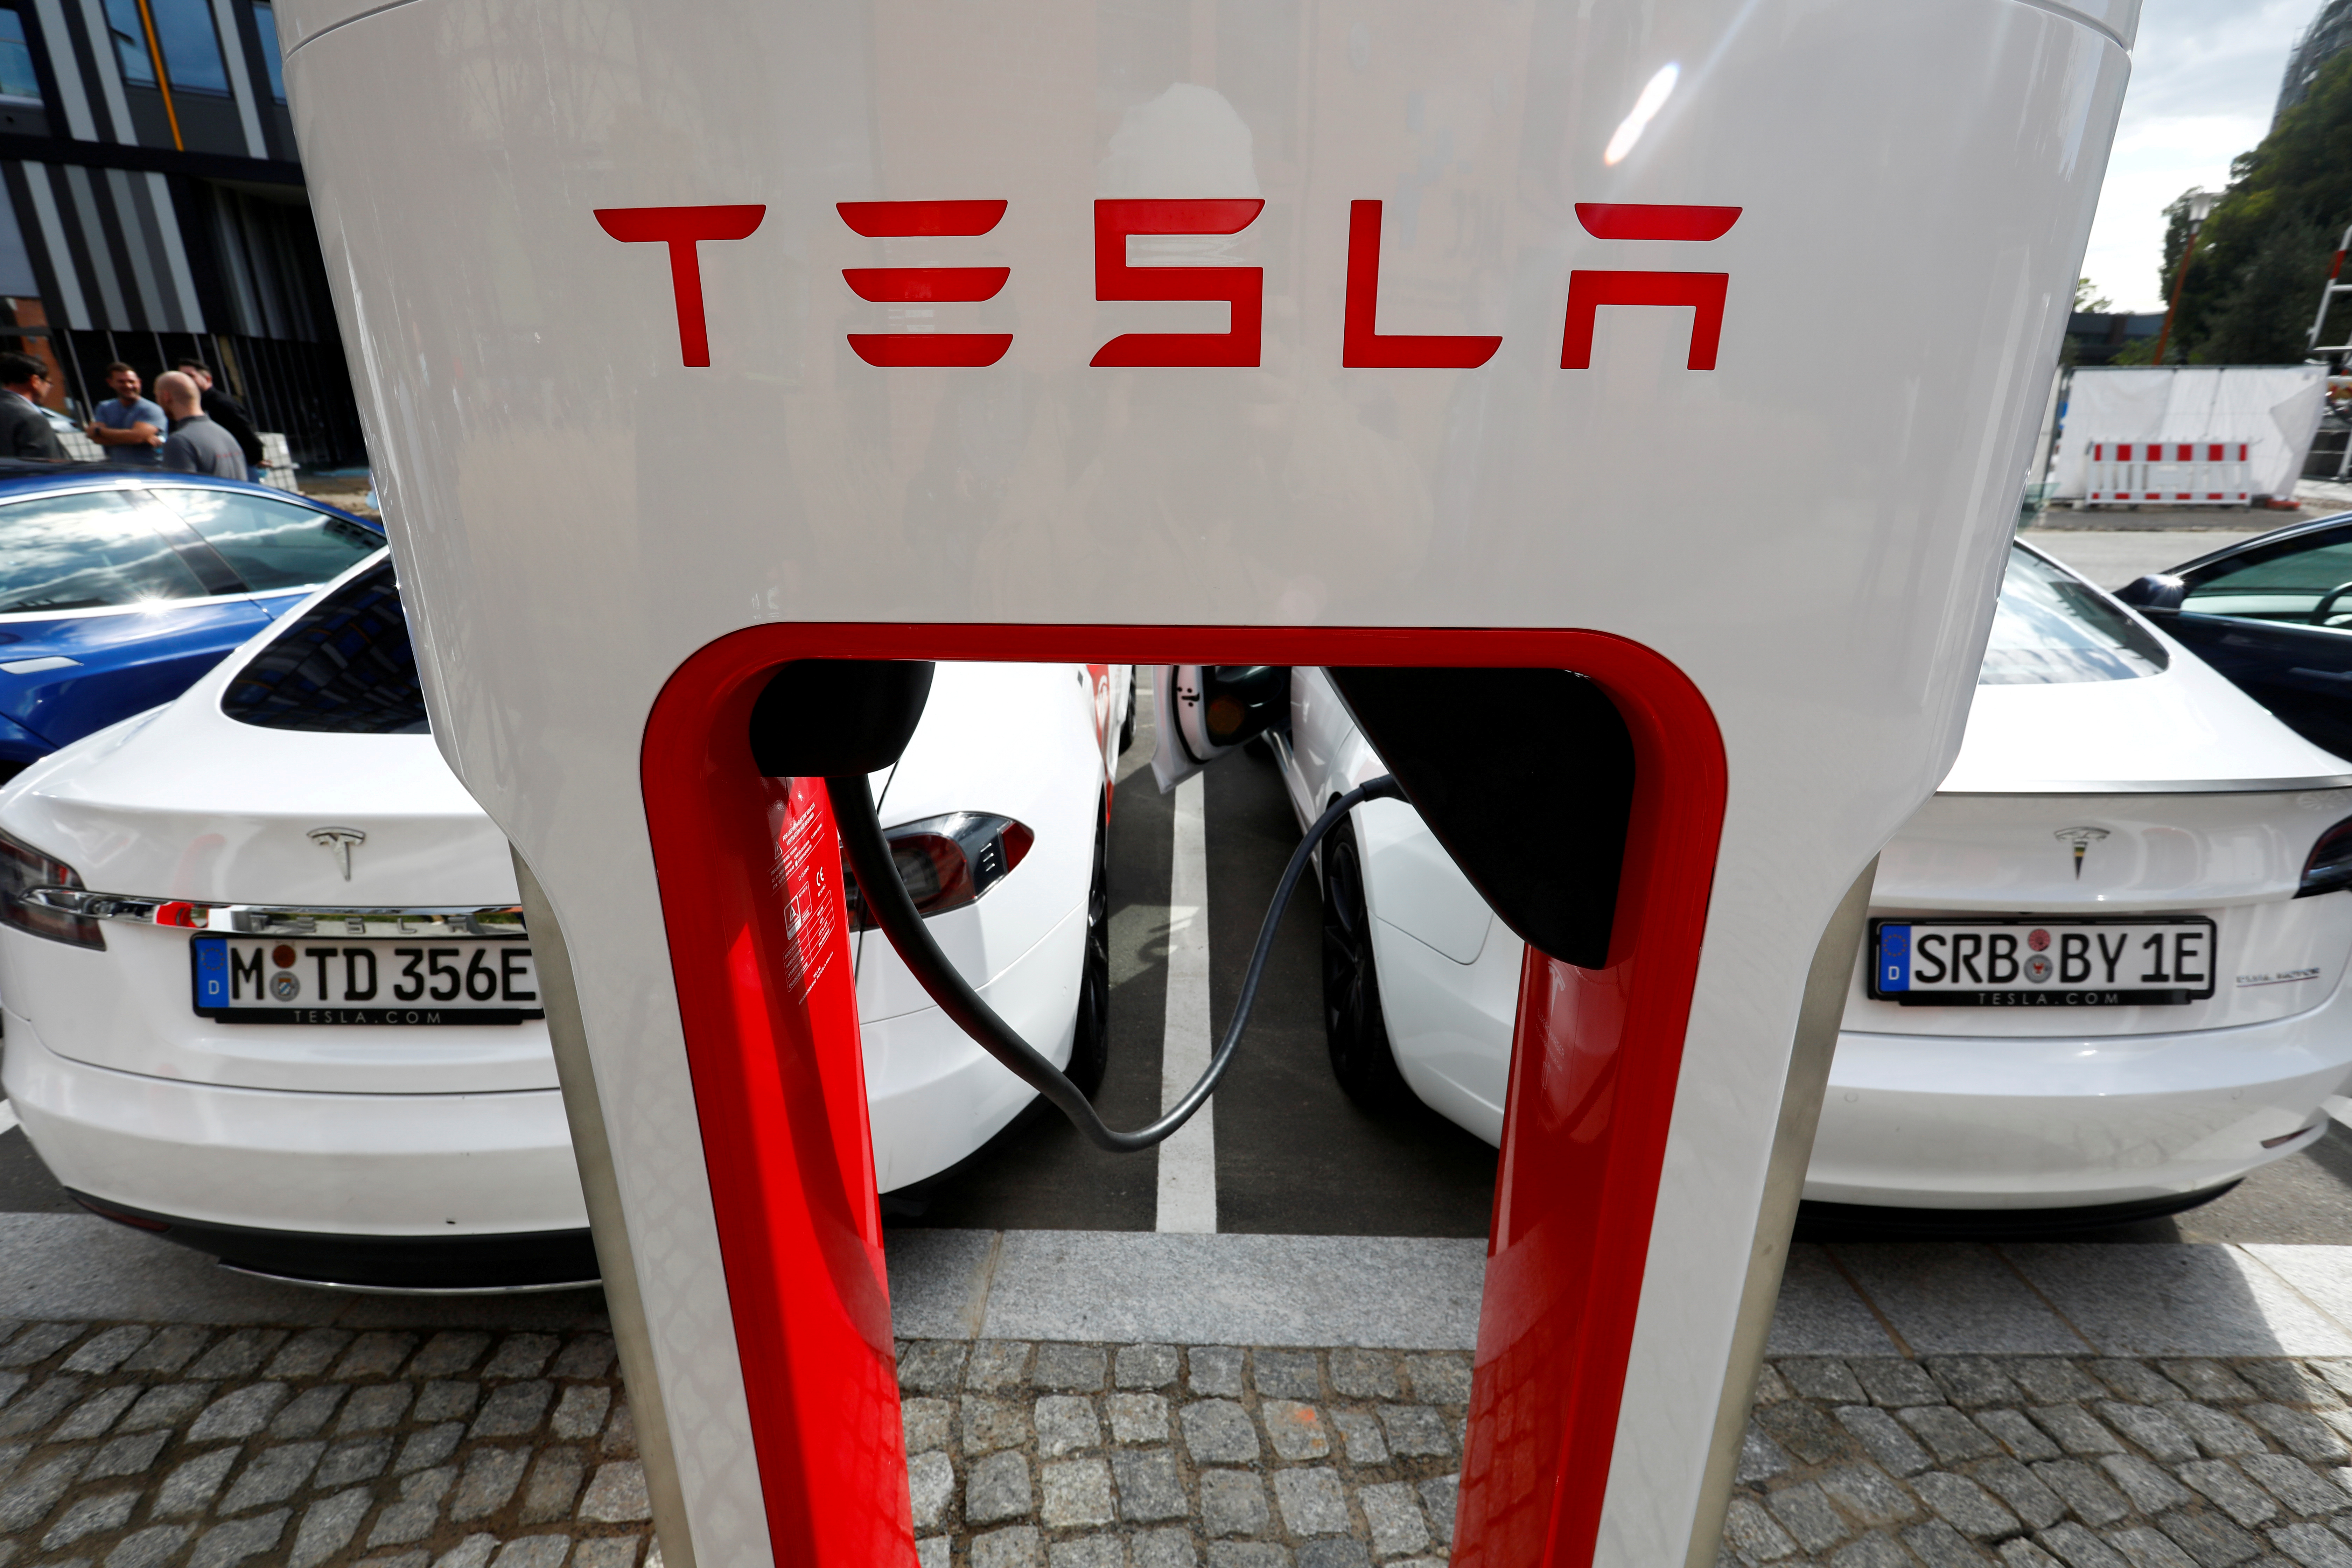 The company logo of Tesla cars is seen on the V3 supercharger equipment during the presentation of the new charge system in the EUREF campus in Berlin, Germany September 10, 2020. REUTERS/Michele Tantussi/File Photo/File Photo